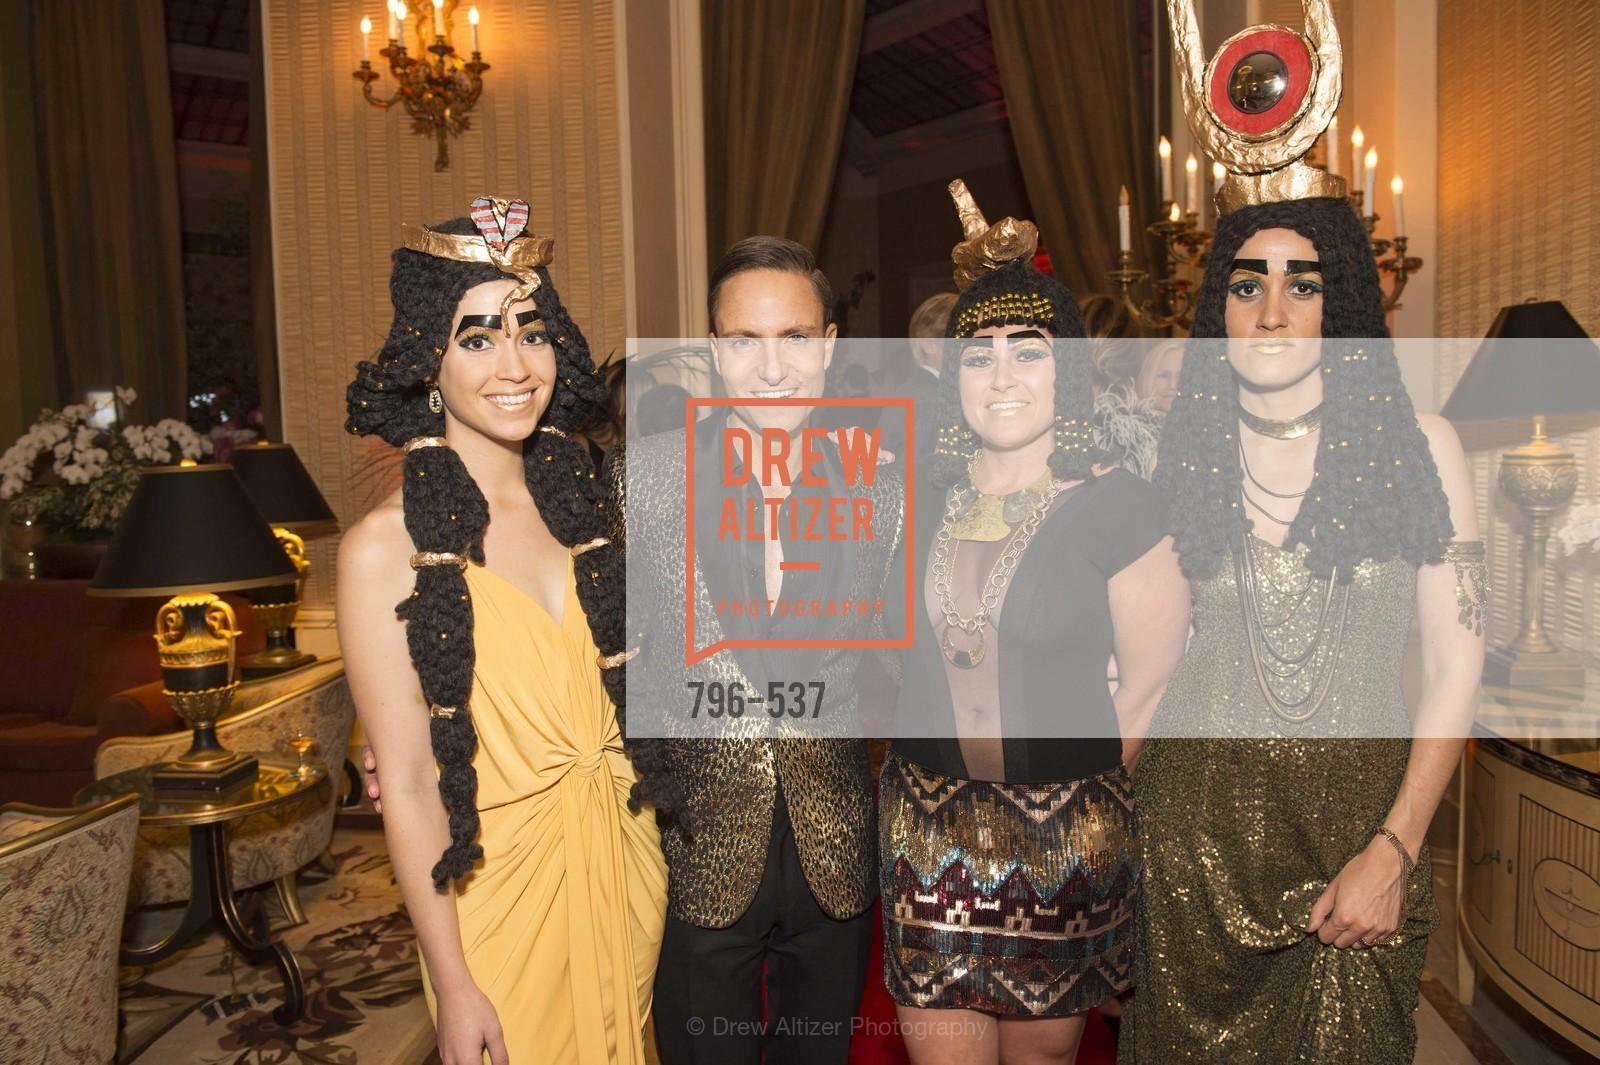 Holly Wilson, Ken Fulk, Tiffany Kramer, Eva Muller, TOP OF THE MARK'S 75TH Anniversary Party, US, November 7th, 2014,Drew Altizer, Drew Altizer Photography, full-service event agency, private events, San Francisco photographer, photographer California